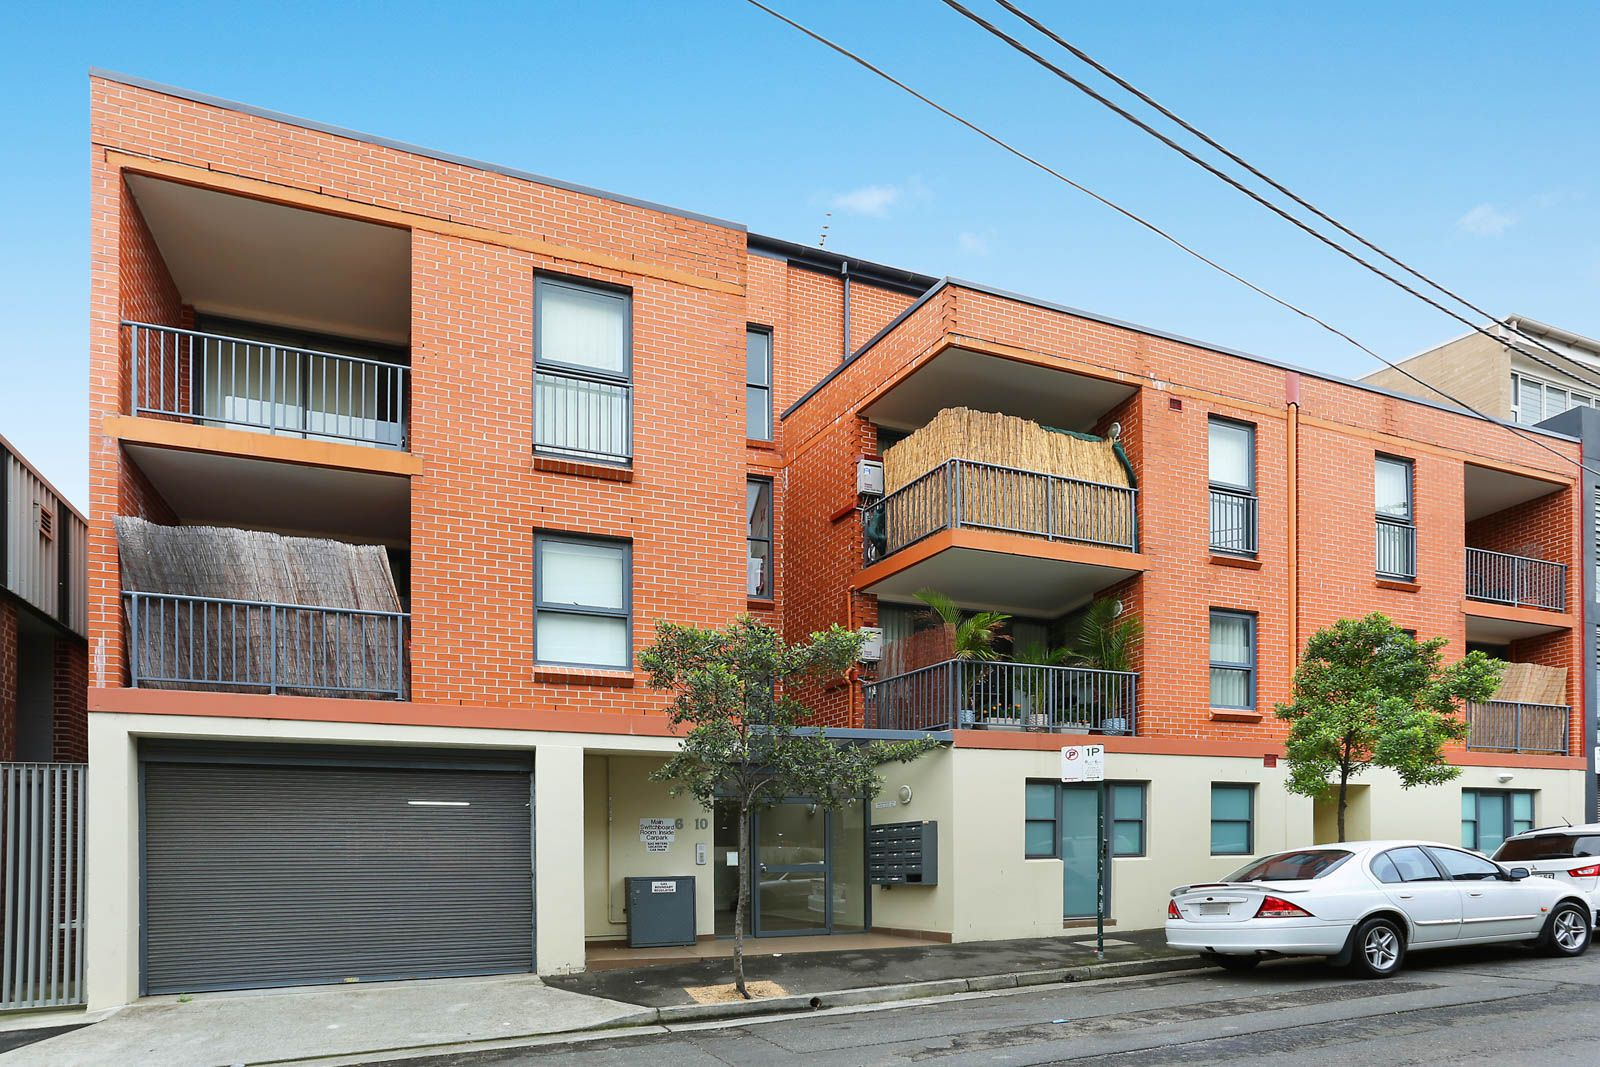 6-10 Purkis Street, Camperdown NSW 2050, Image 2